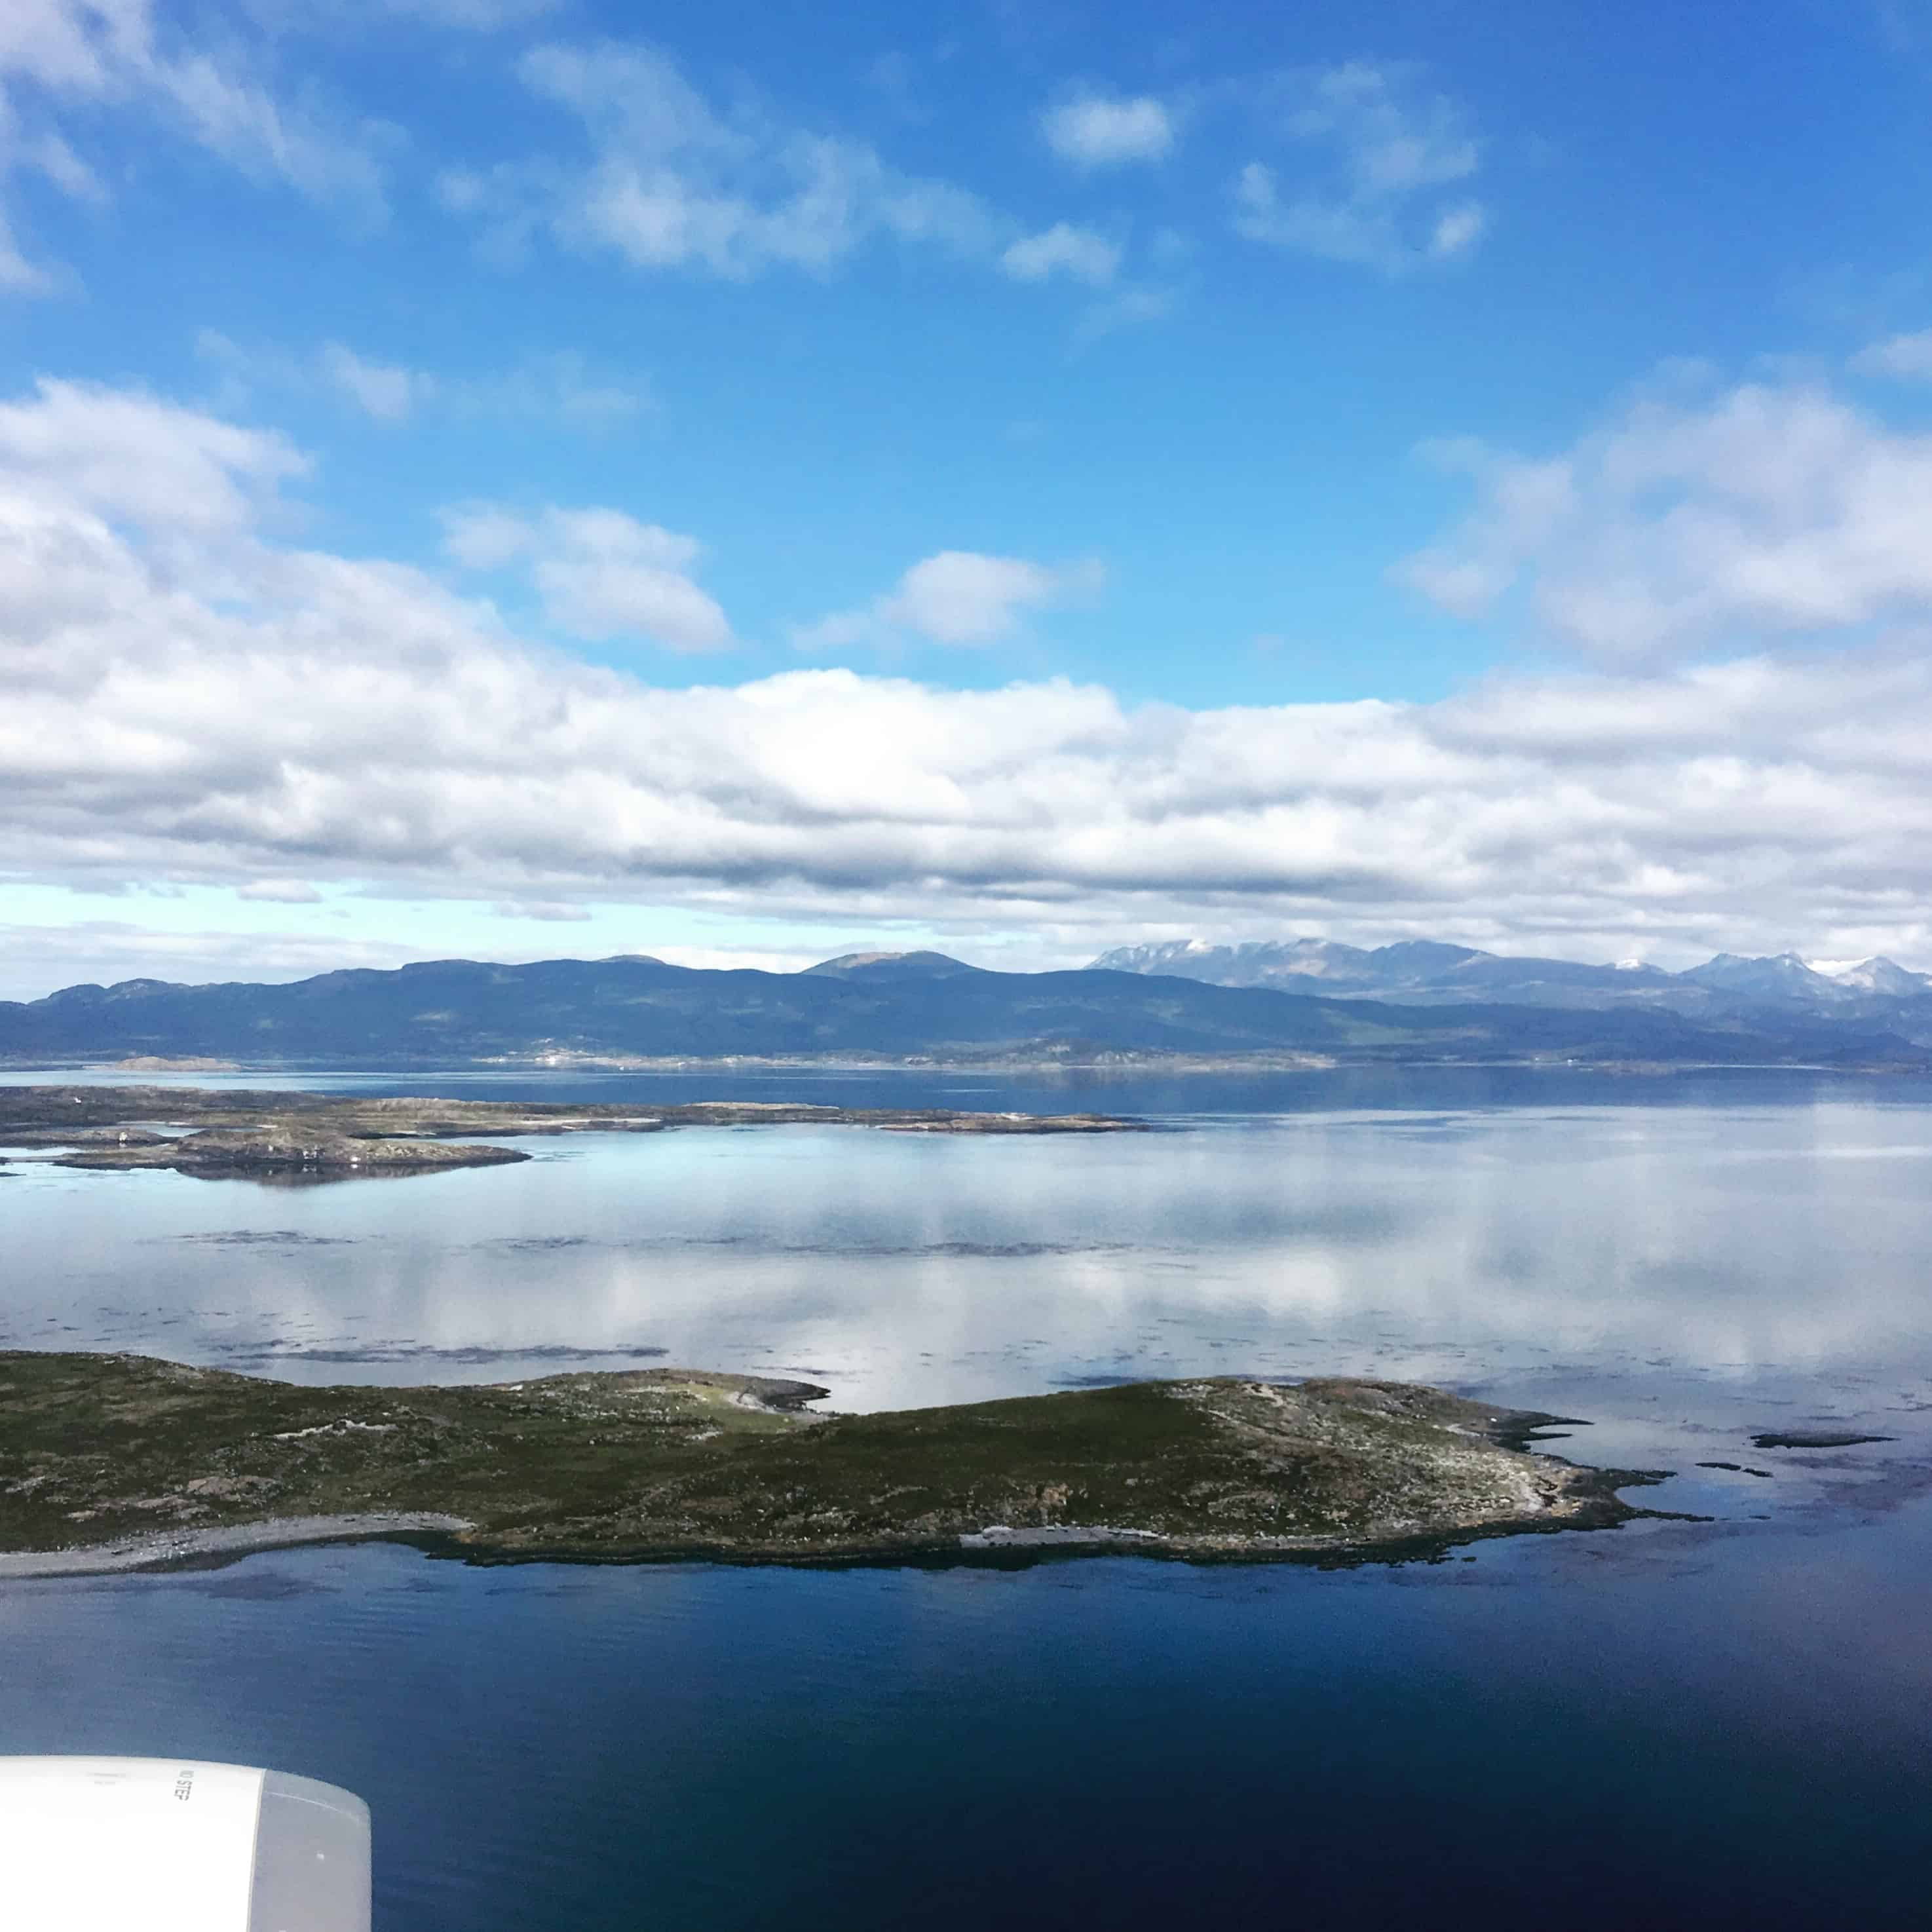 View from the flight into Ushuaia reveals islands and mountains along the Beagle Channel.